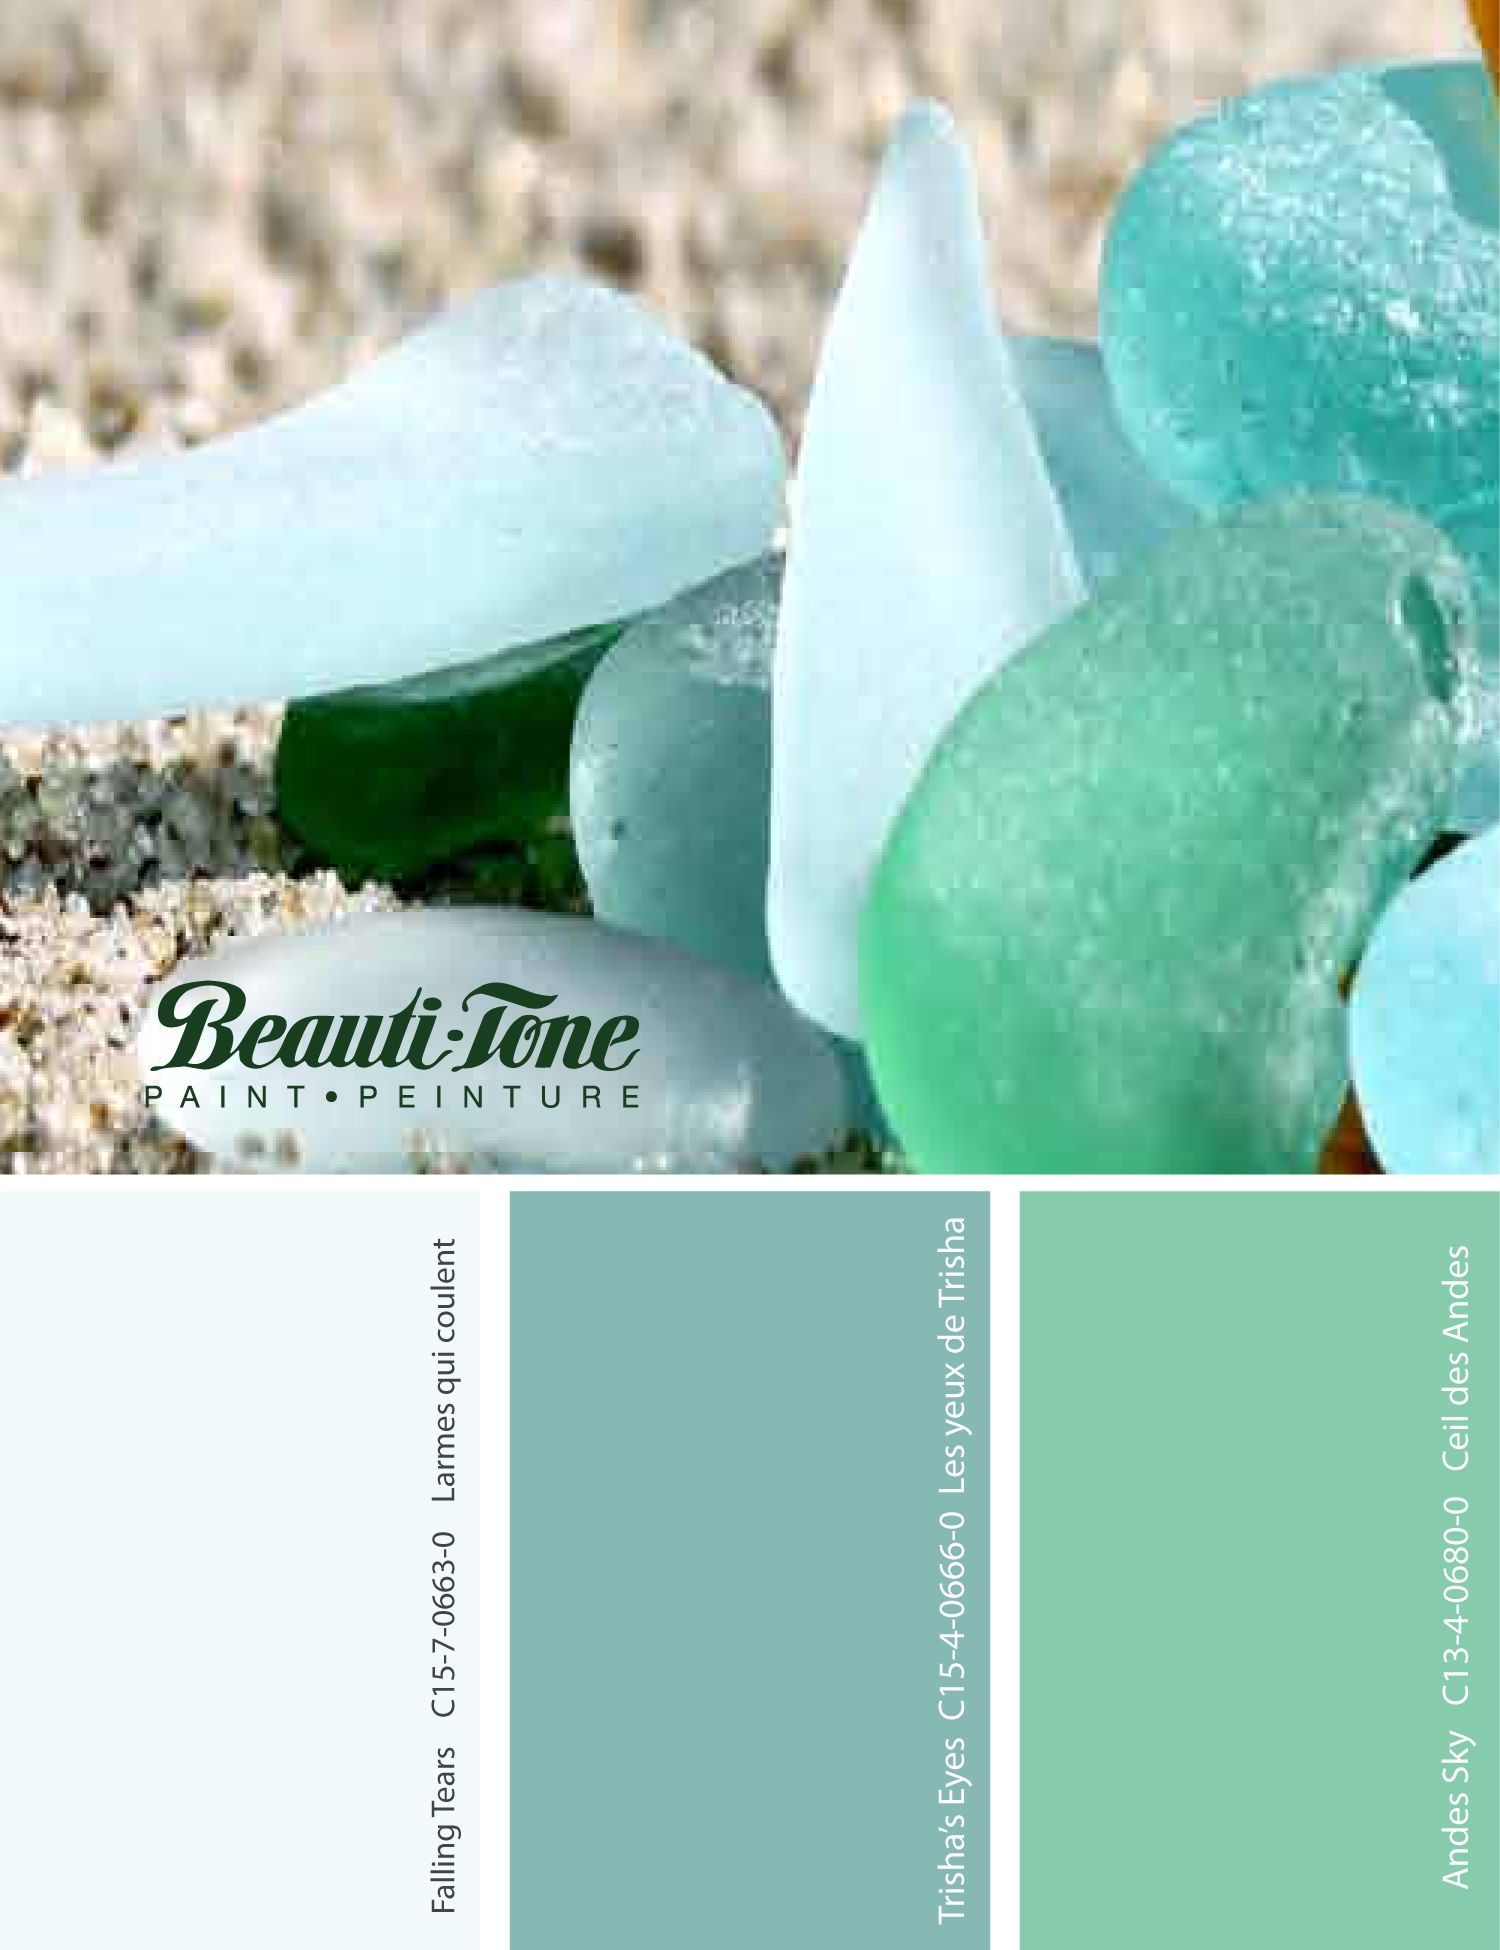 These beautitone colours provide a great beach feel with a soft these beautitone colours provide a great beach feel with a soft sea glass palette geenschuldenfo Images